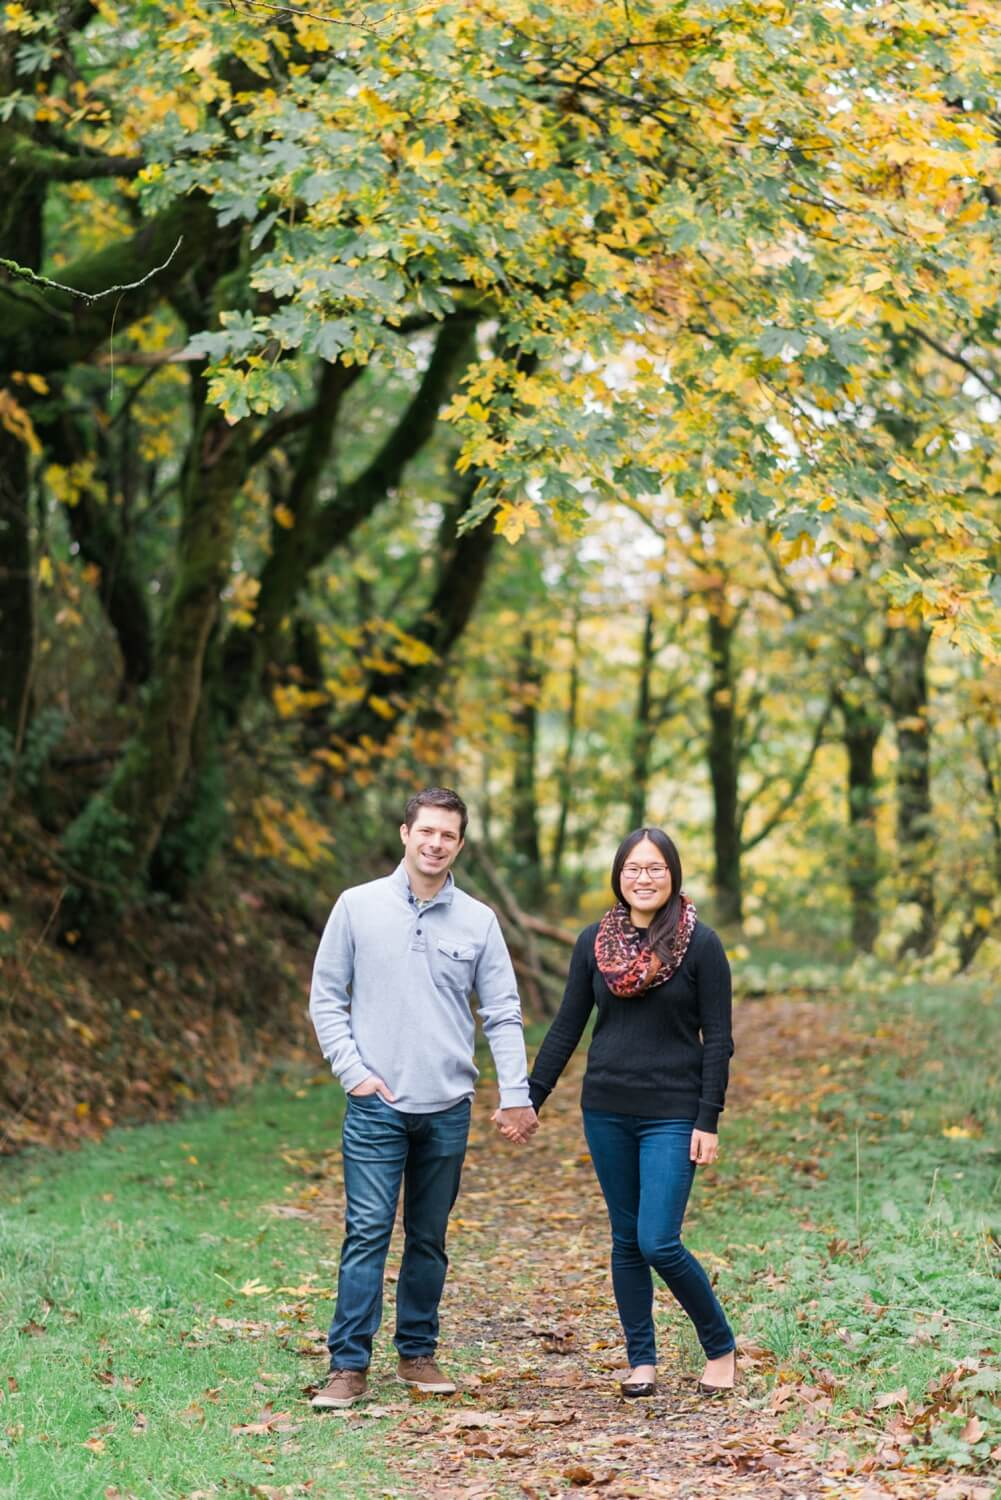 portland-engagement-colubia-river-gorge-latourell-waterfall-autumn-fall-crown-point-shelley-marie-photo-10_cr.jpg